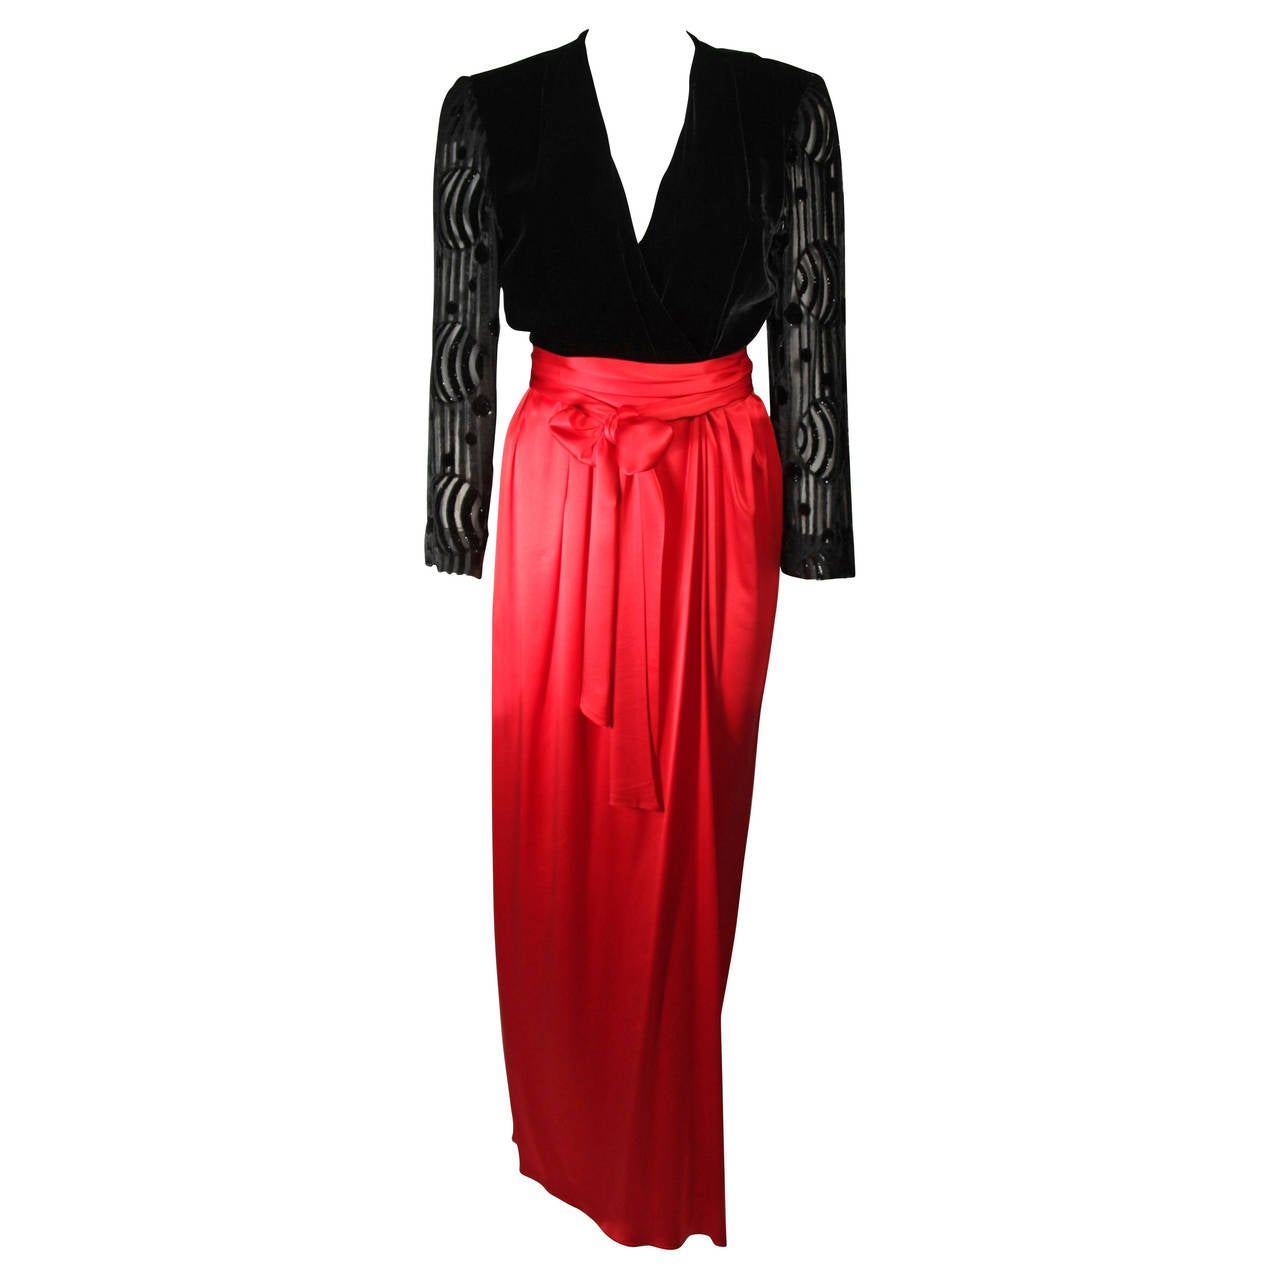 Adele Simpson Burnout Black Velvet and Red Silk Gown Size Small